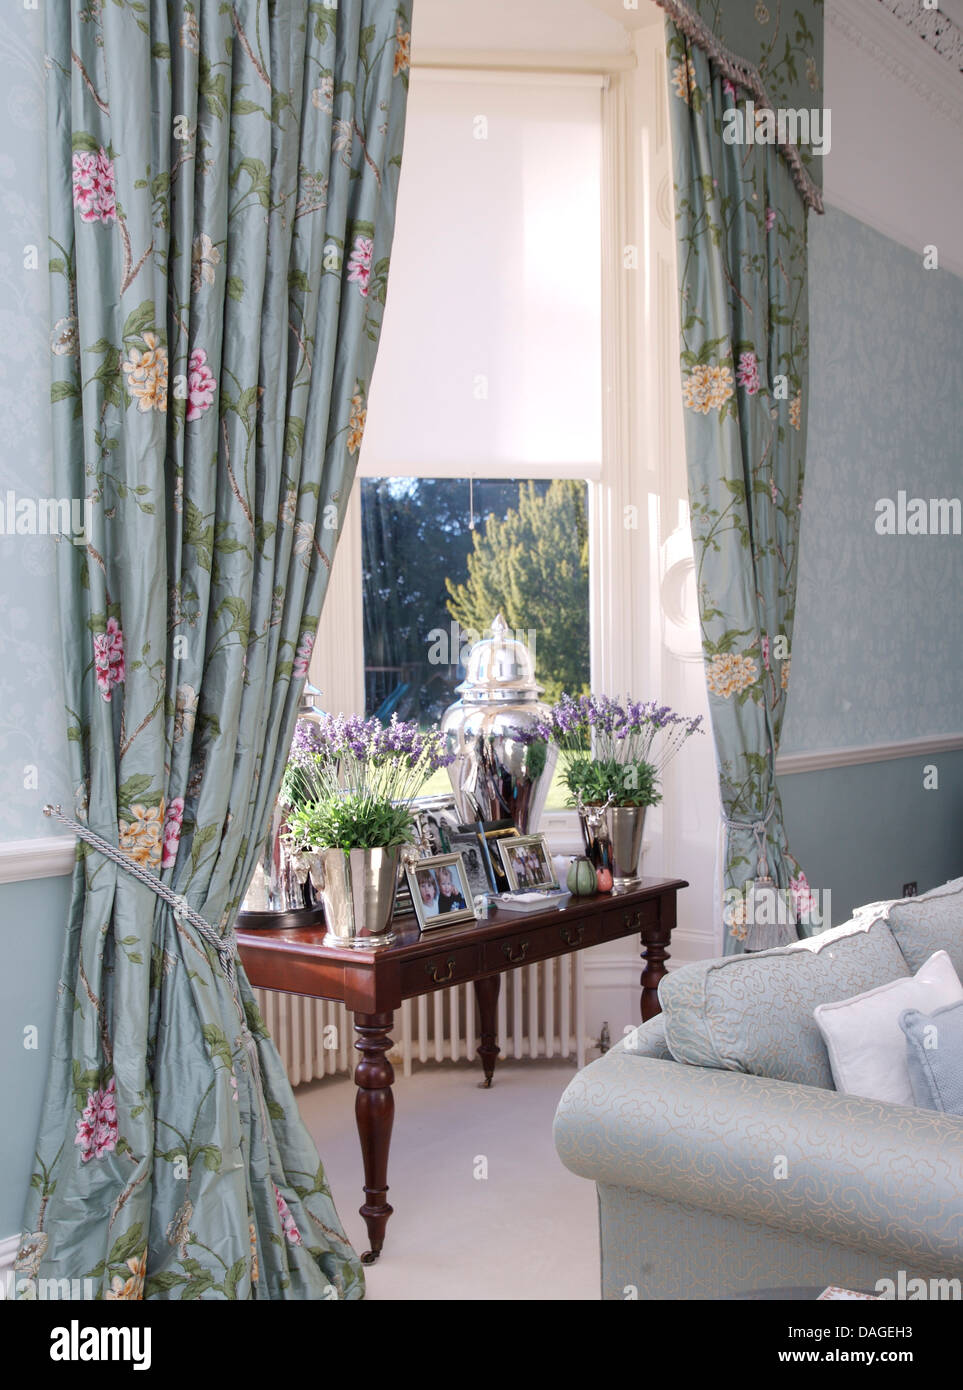 Pots Of Lavender On Table In Window With Pale Blue Floral Curtains And  White Blinds In Pale Blue Living Room